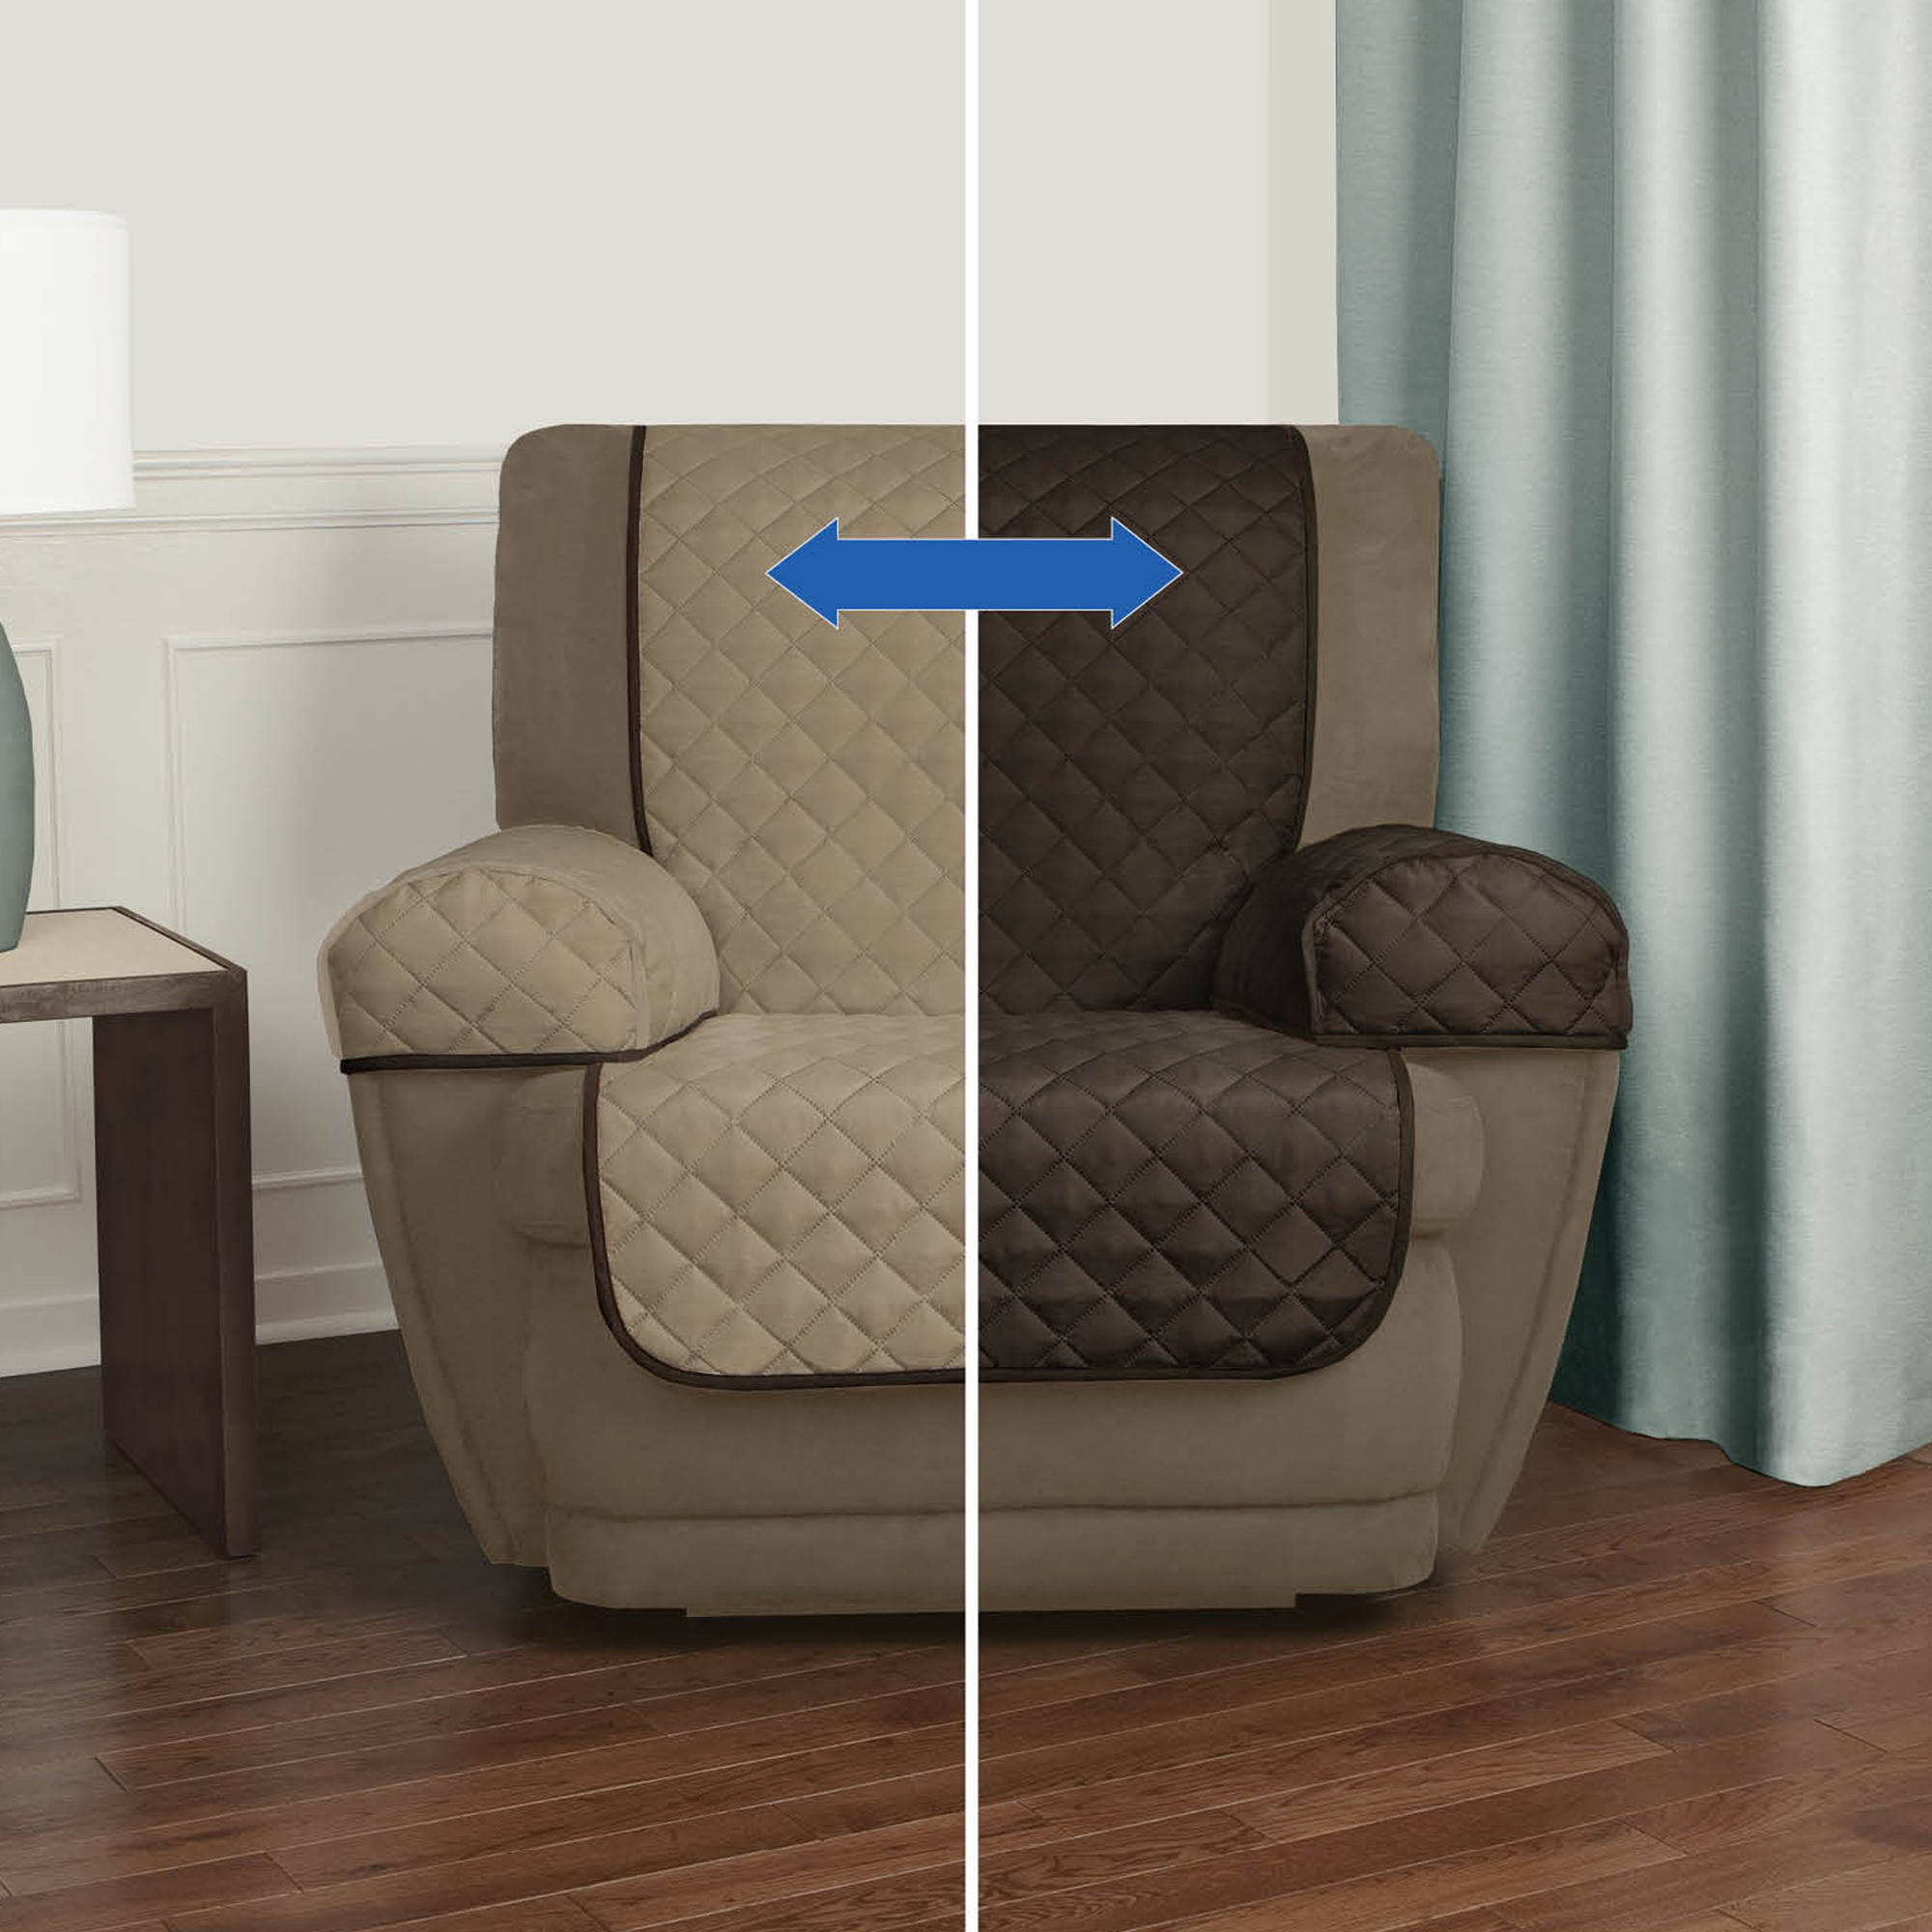 Mainstays Reversible Microfiber Fabric Pet/Furniture Recliner Chair Cover & Slipcovers - Walmart.com islam-shia.org